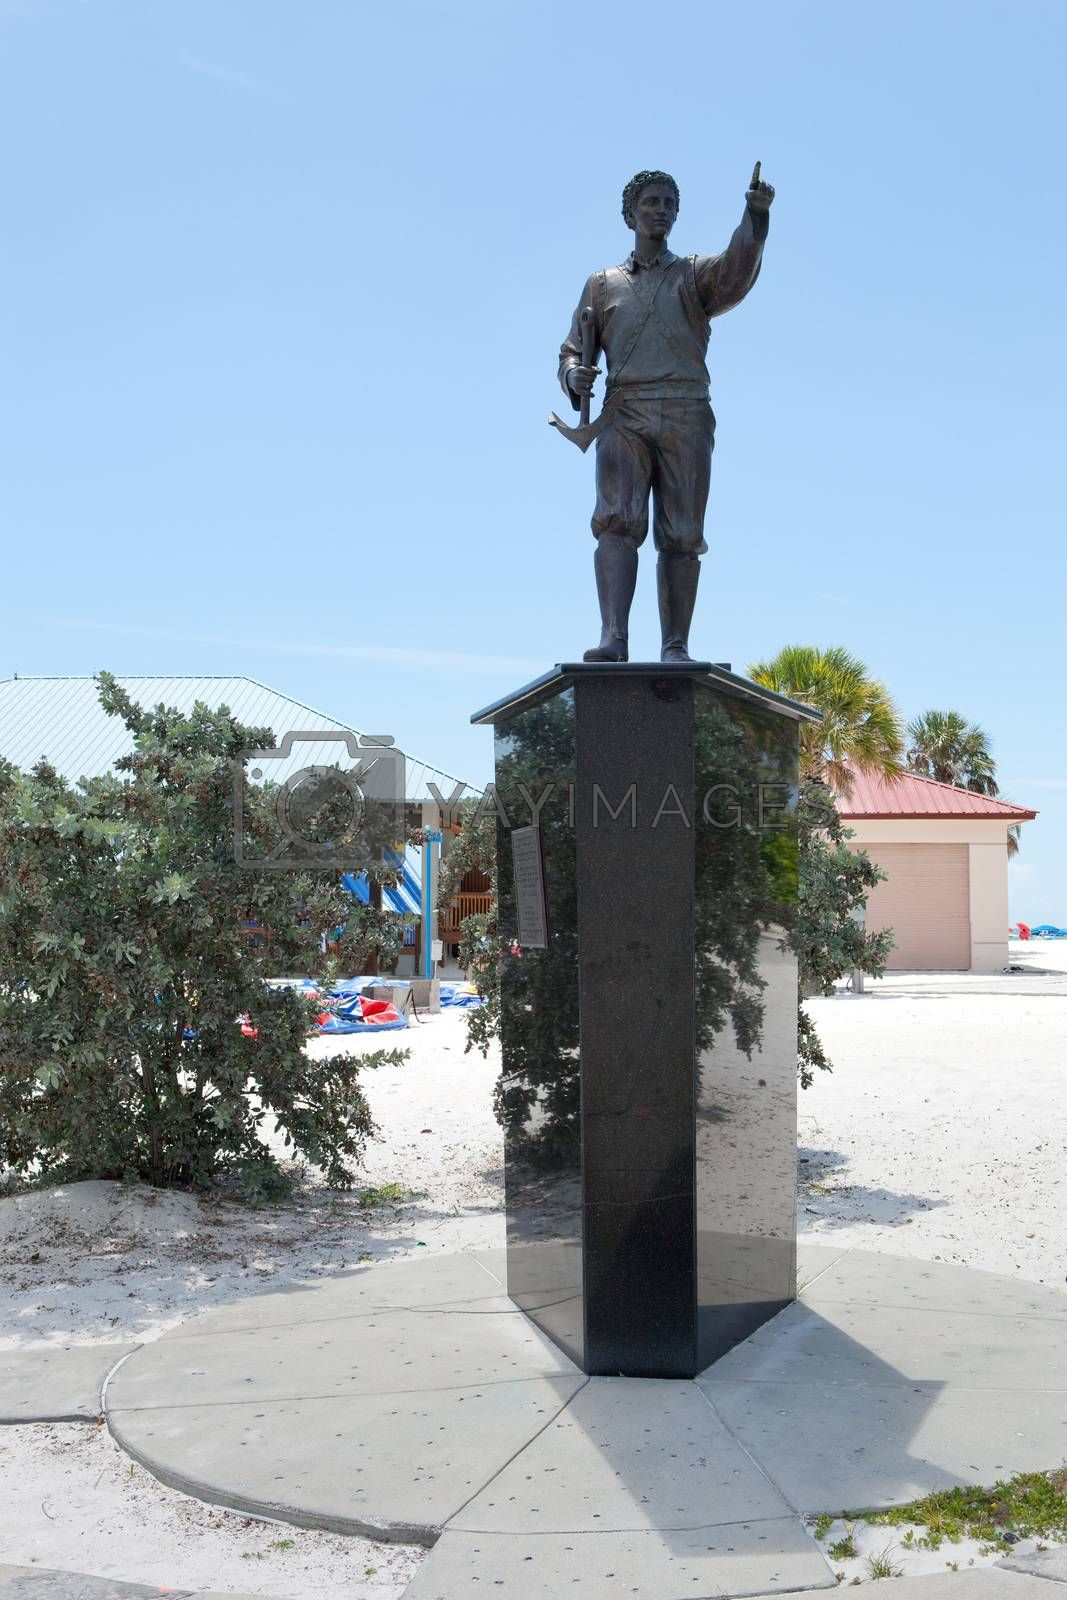 First Greel in America Theodoros Griego public statue in Clearwater Florida.